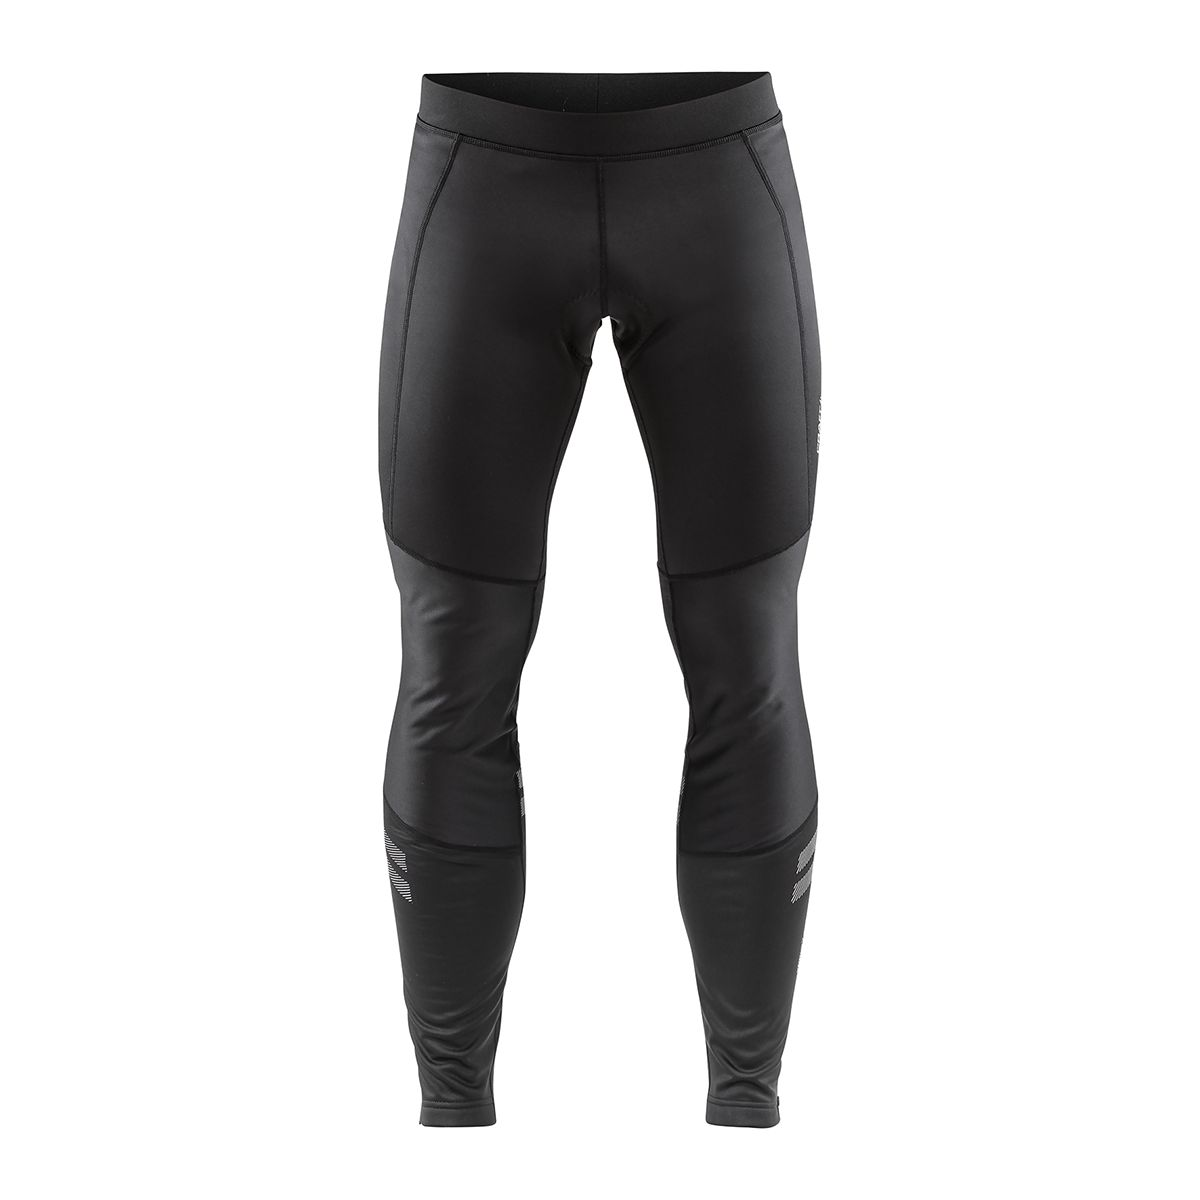 IDEAL WIND TIGHTS M Herren Thermo Radhose lang